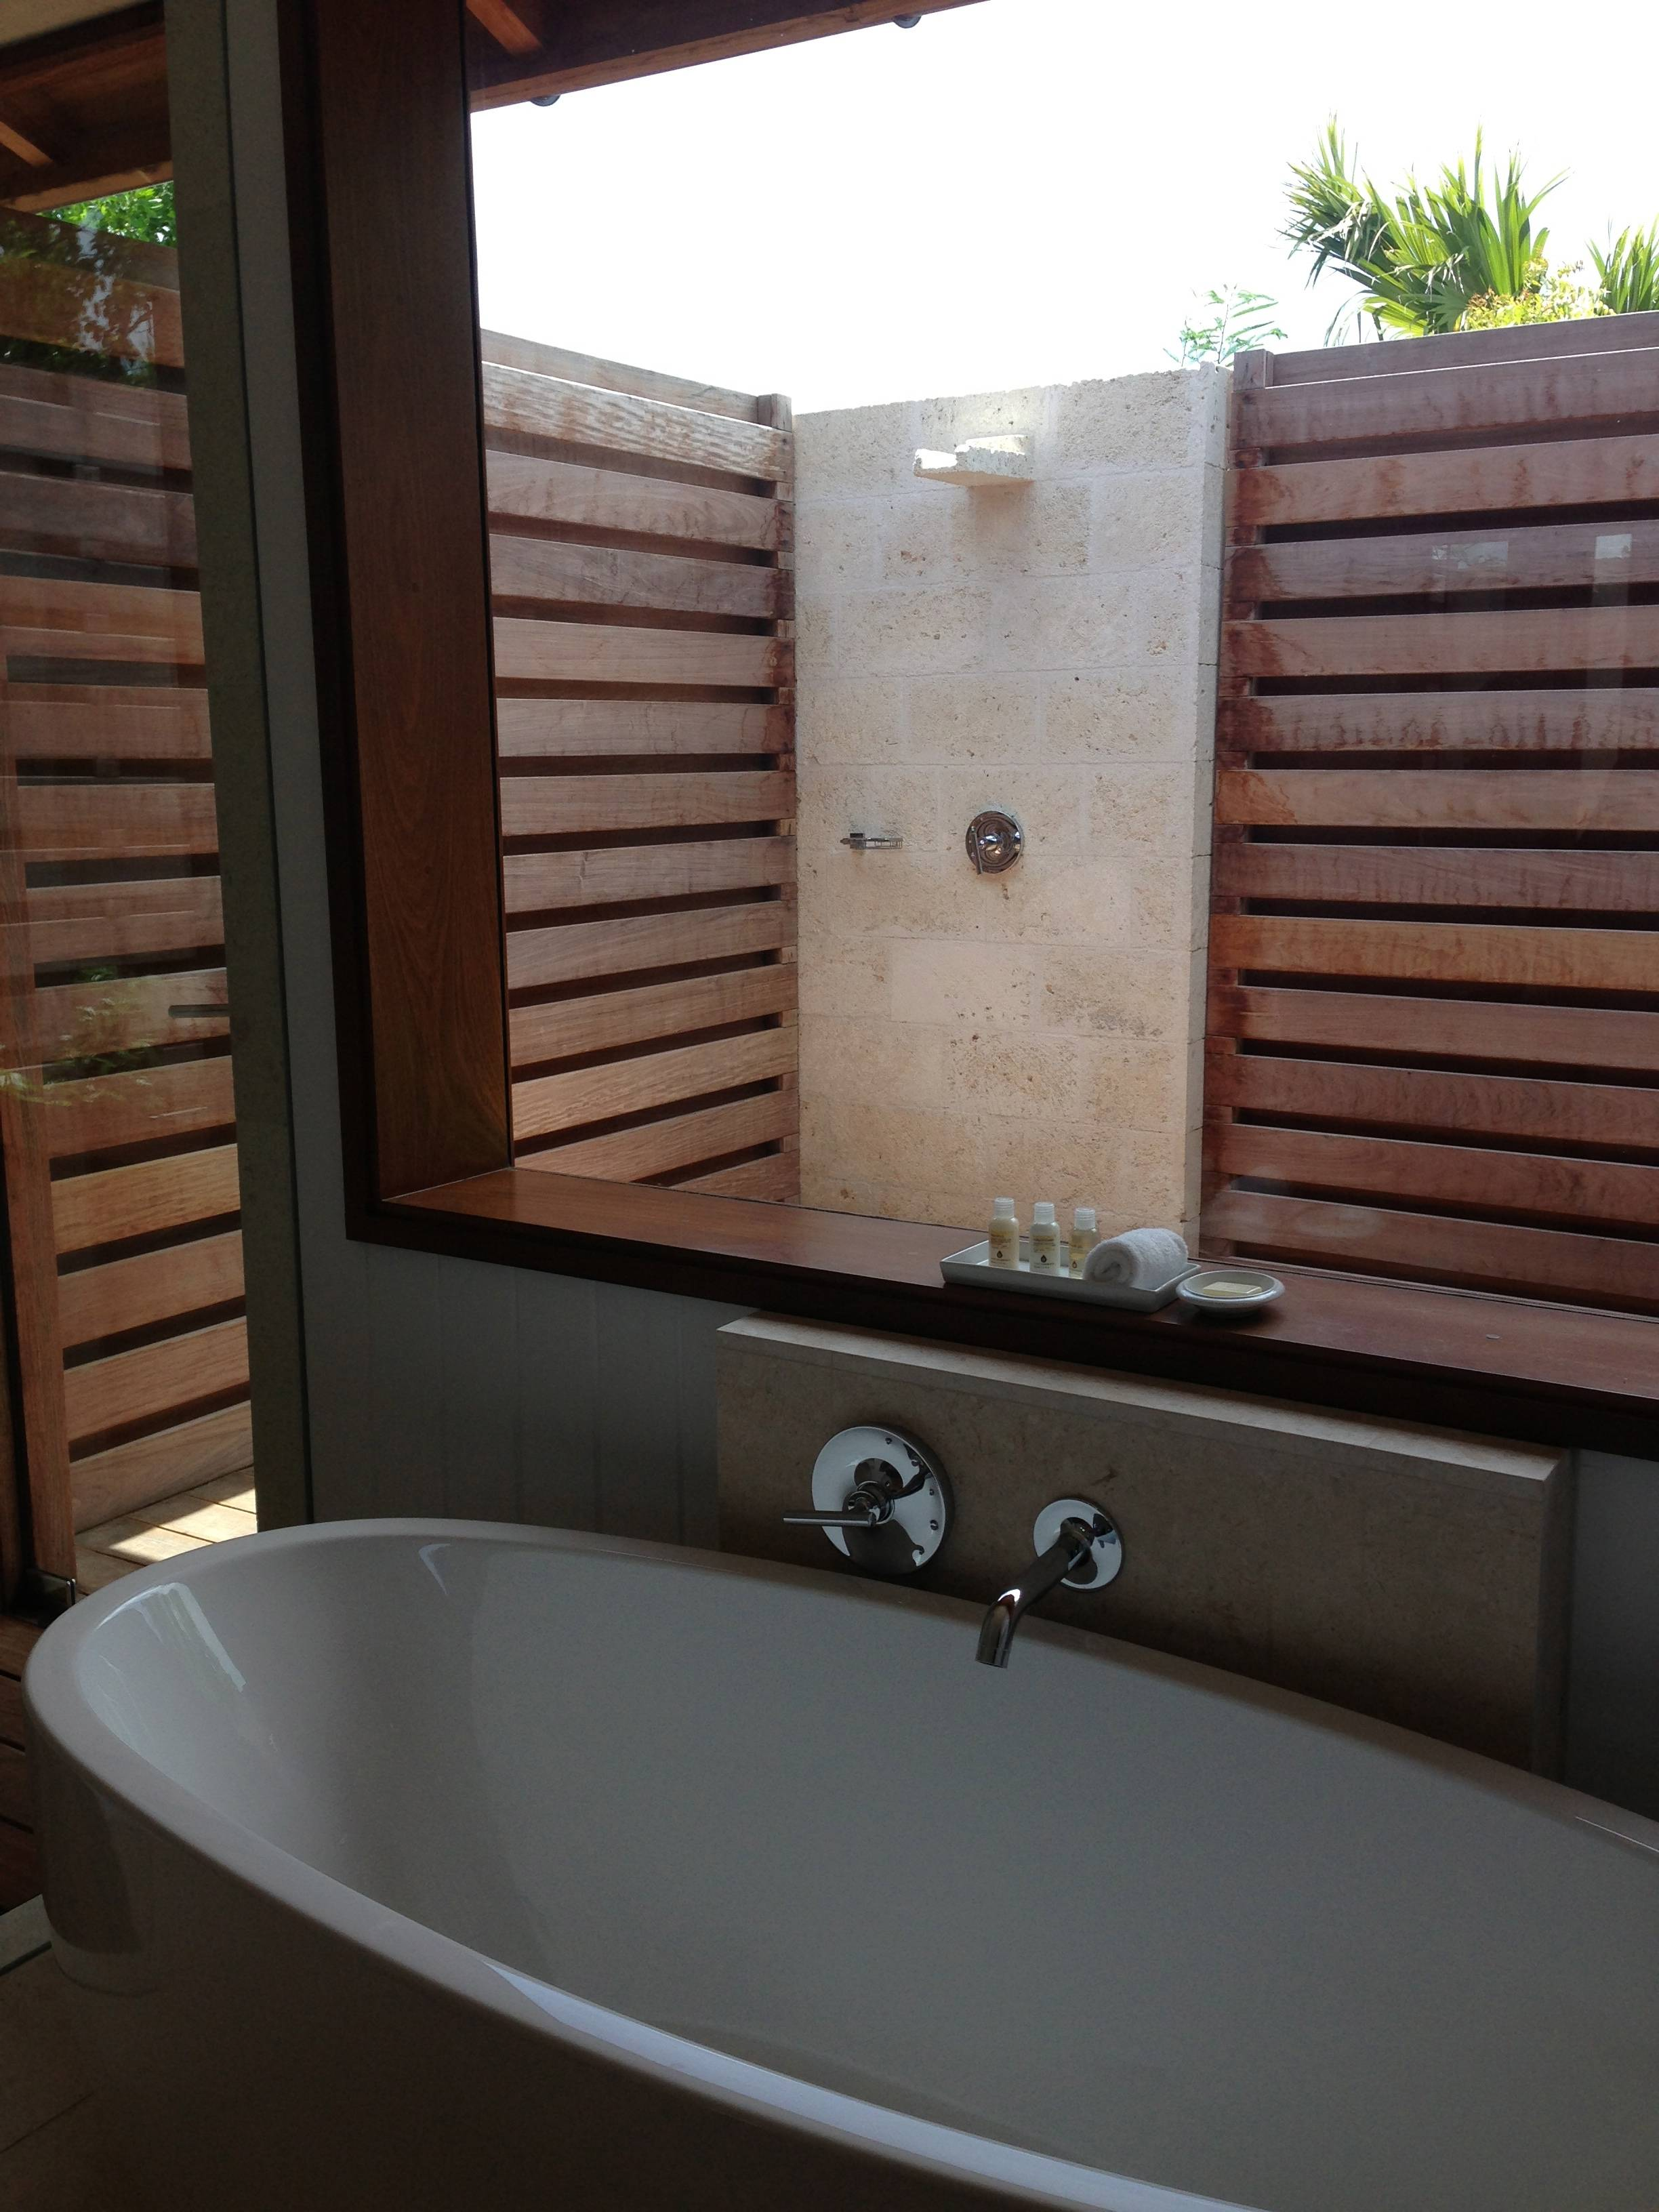 3 bedroom beach villa bathroom